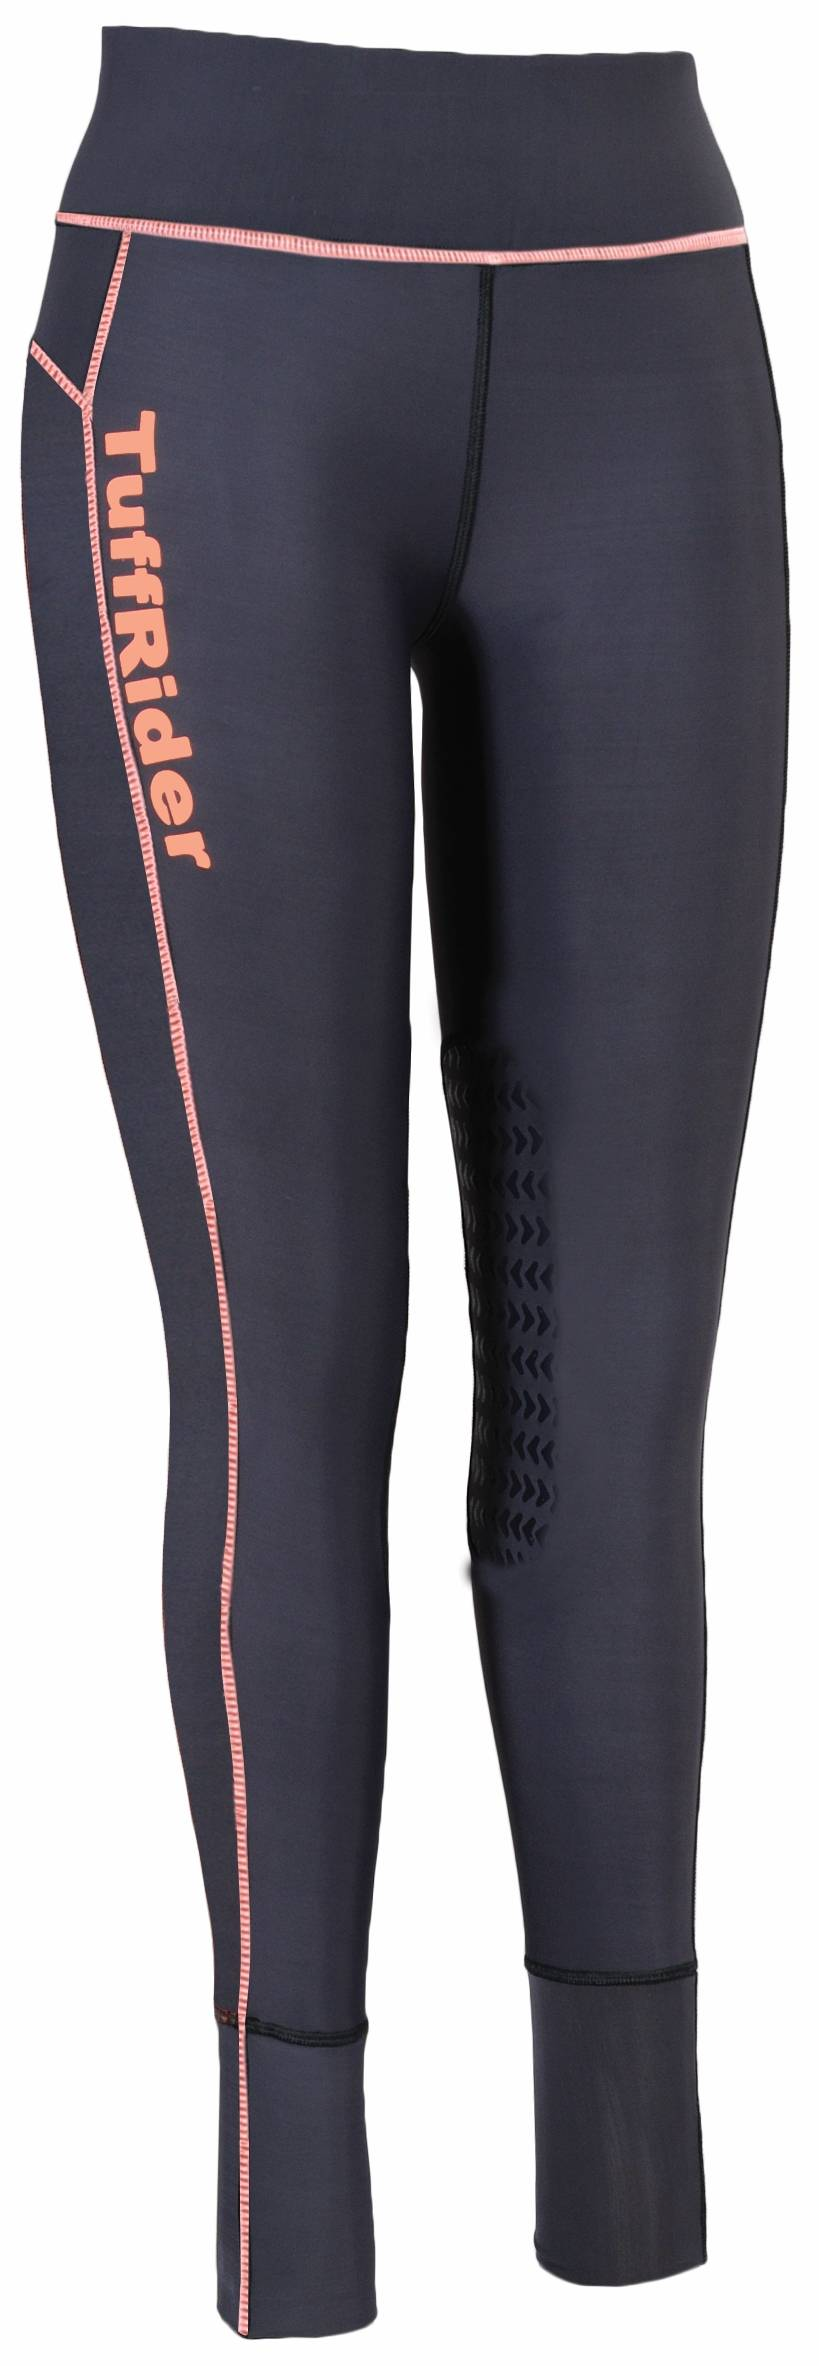 TuffRider Marathon Pull On Tights - Kids